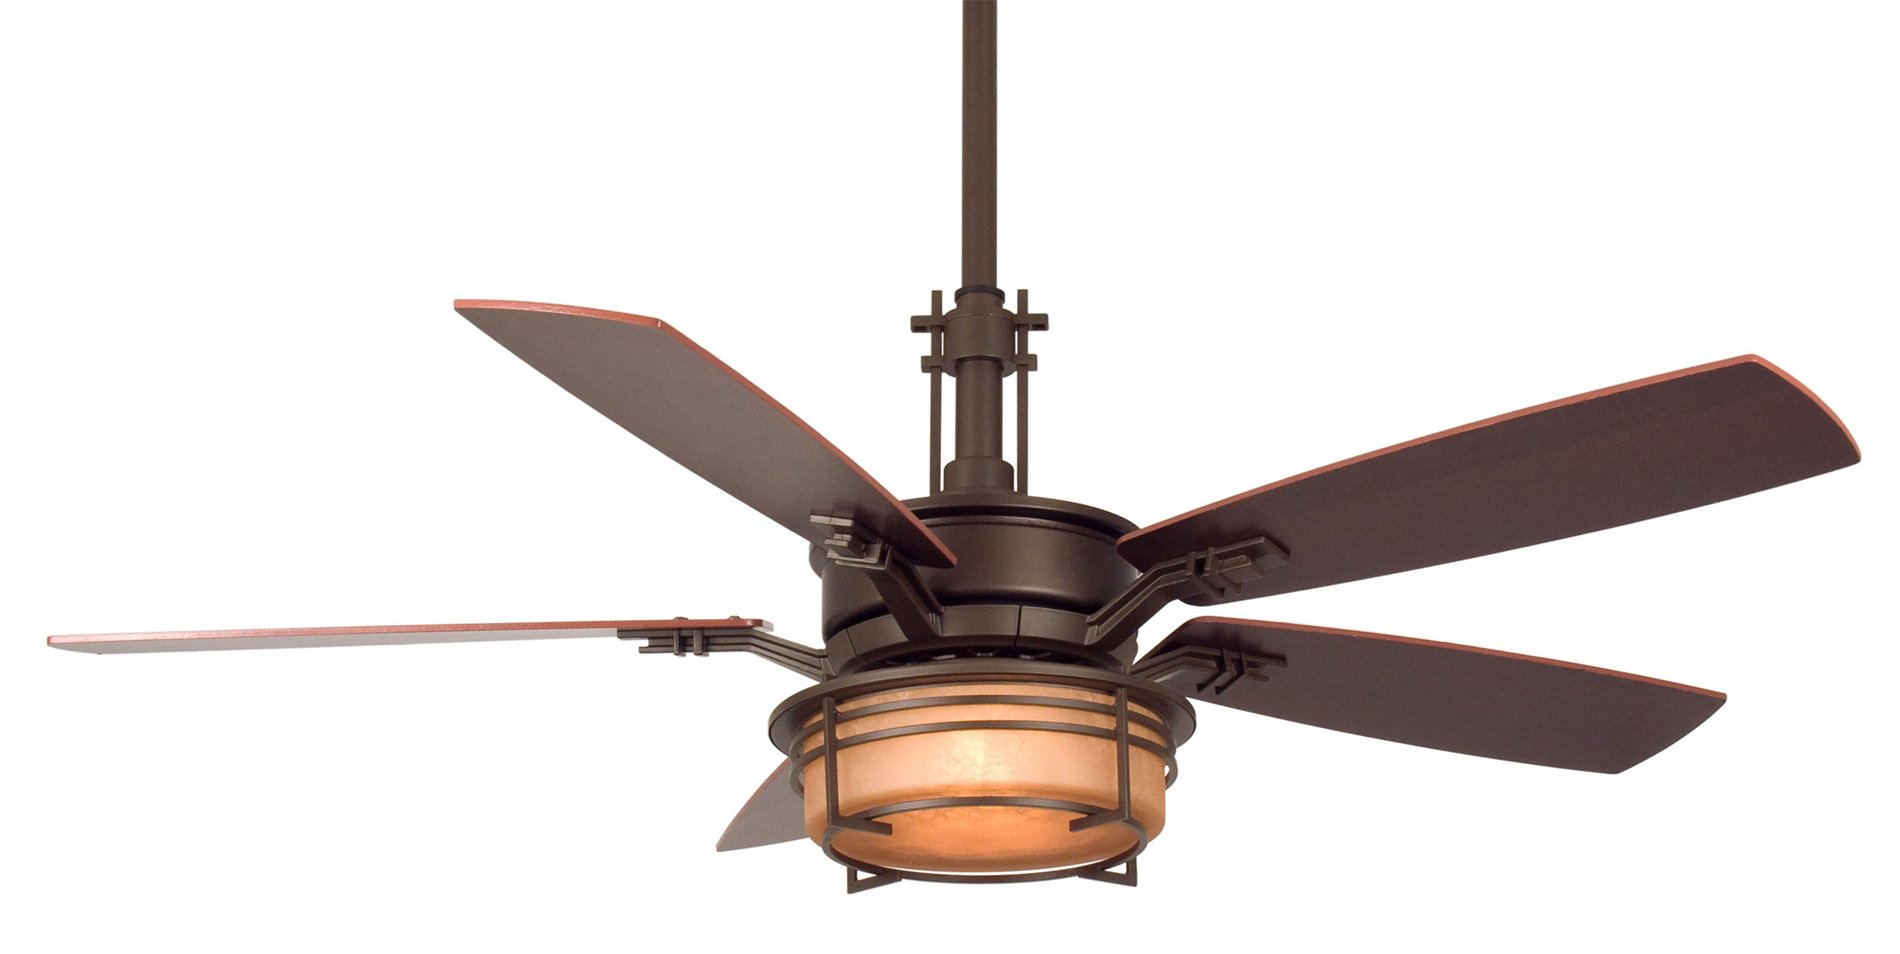 Ceiling Fans With Lights : Fanimation fp quot andover tropical ceiling fan fm